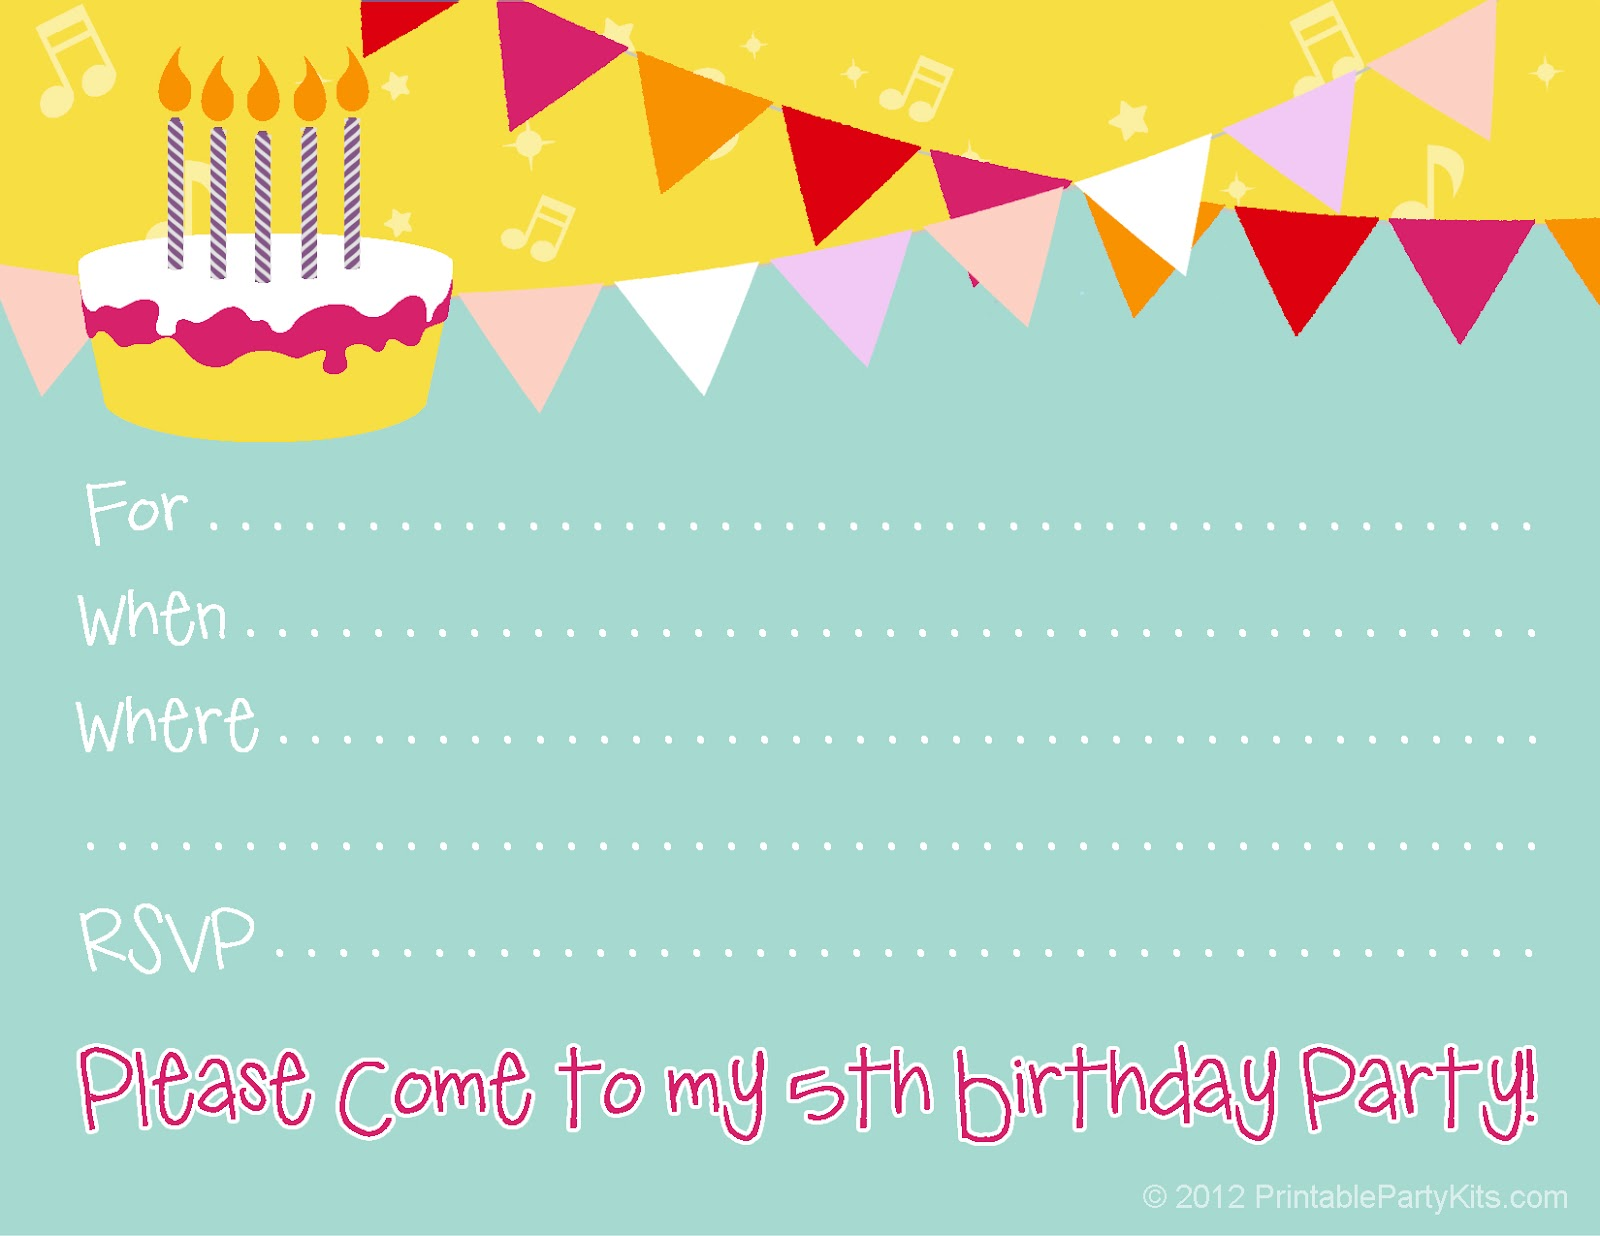 Party Invitation Cards Templates party invitations templates free – Free Birthday Card Template Word